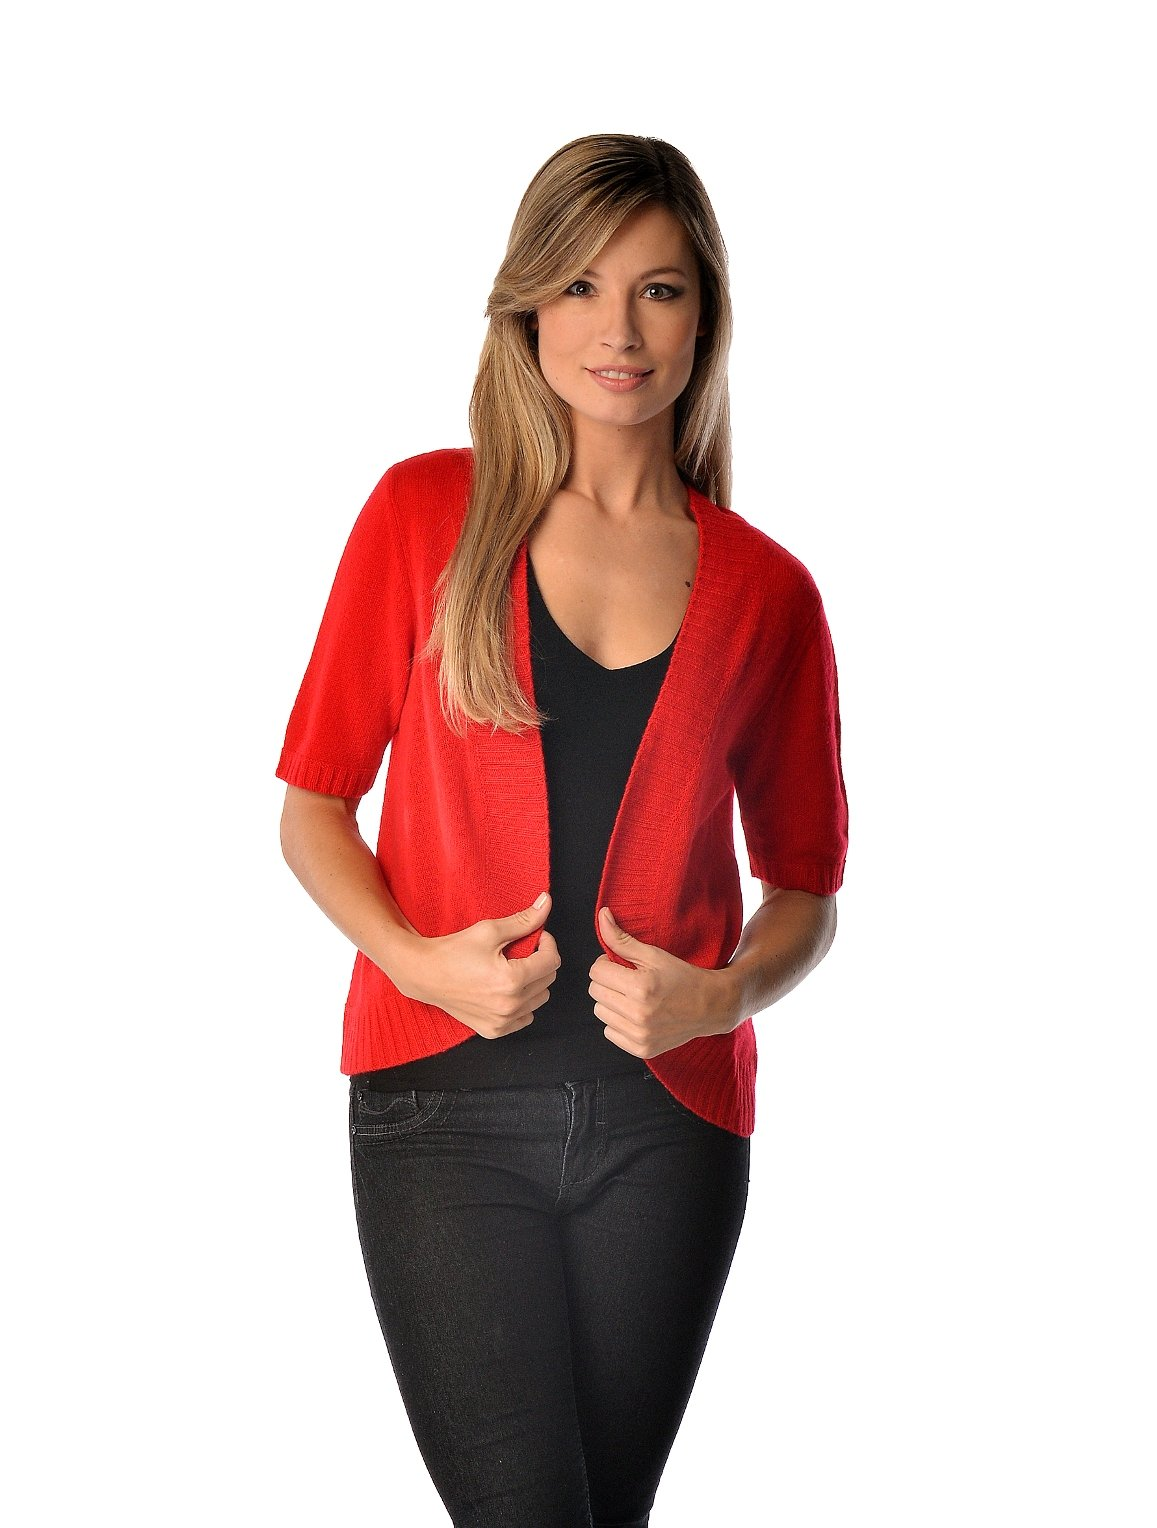 Pure Cashmere Shrug Style Sweater (Camel, One Size)